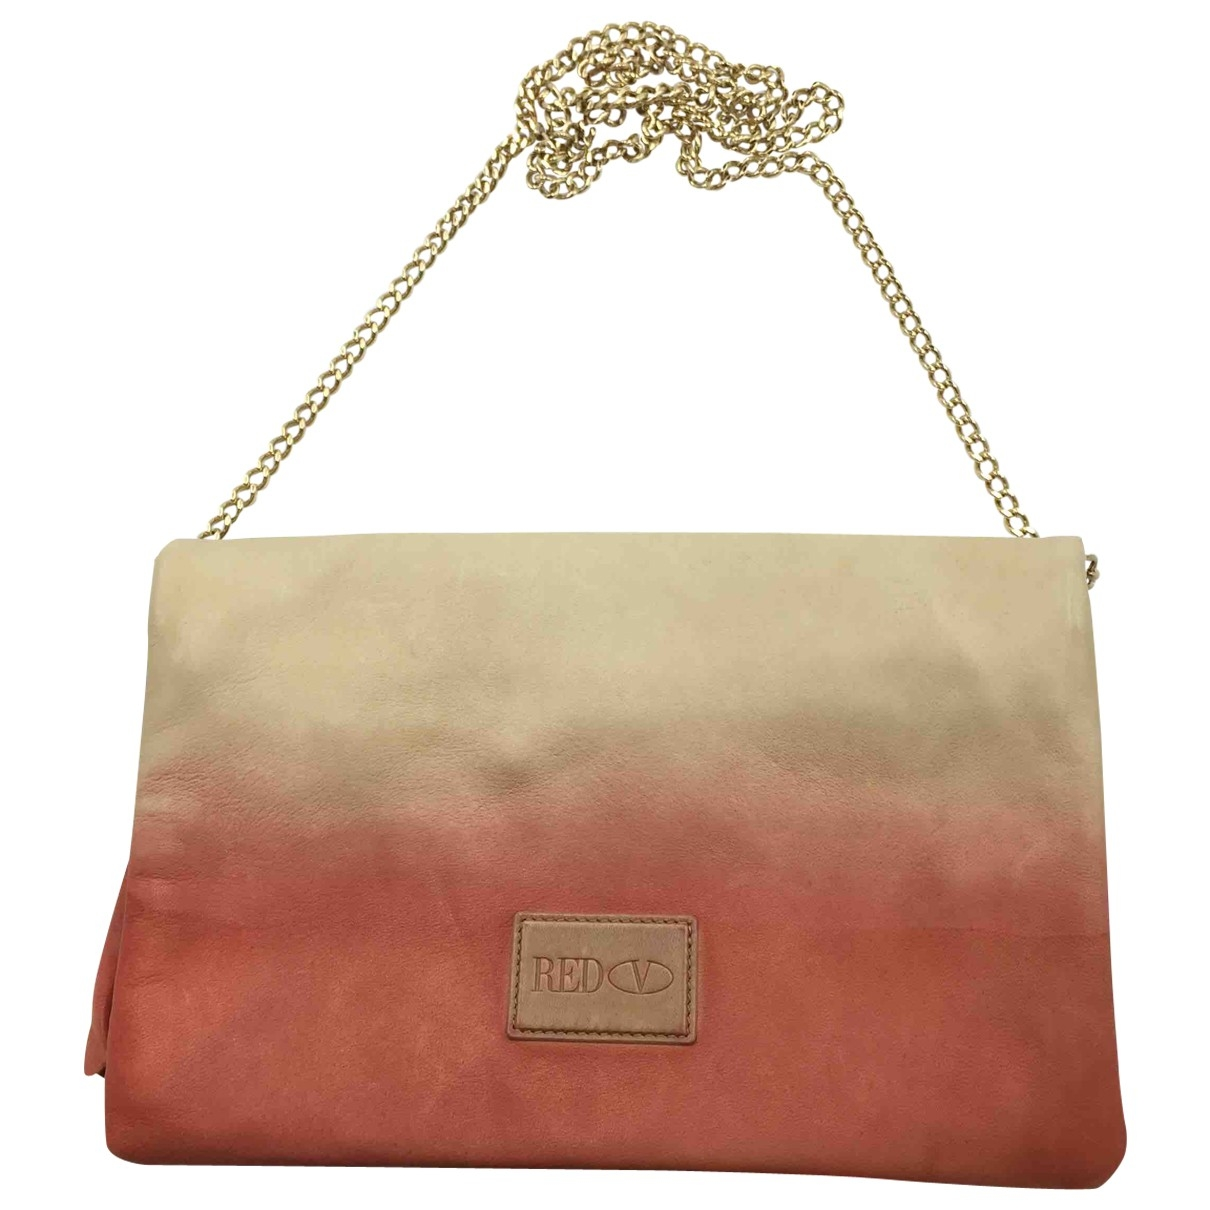 Red Valentino Garavani \N Pink Leather handbag for Women \N